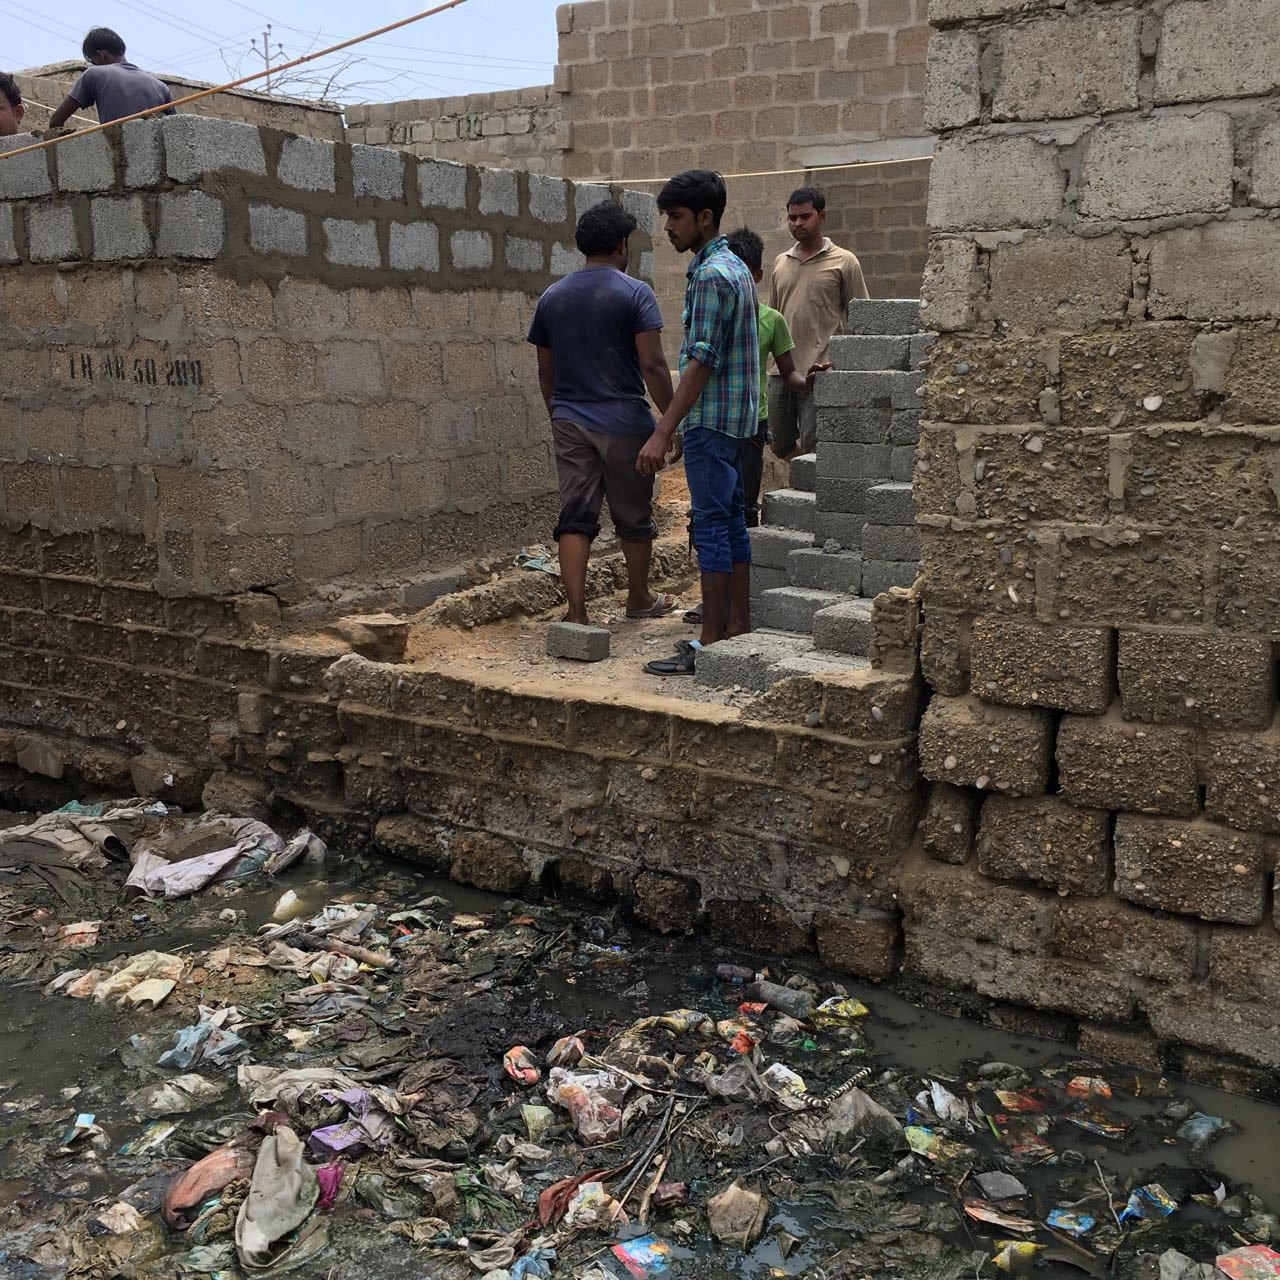 Residents stand at the corner of a lane turned into an open garbage dump in Karachi's Arkanabad neighbourhood.